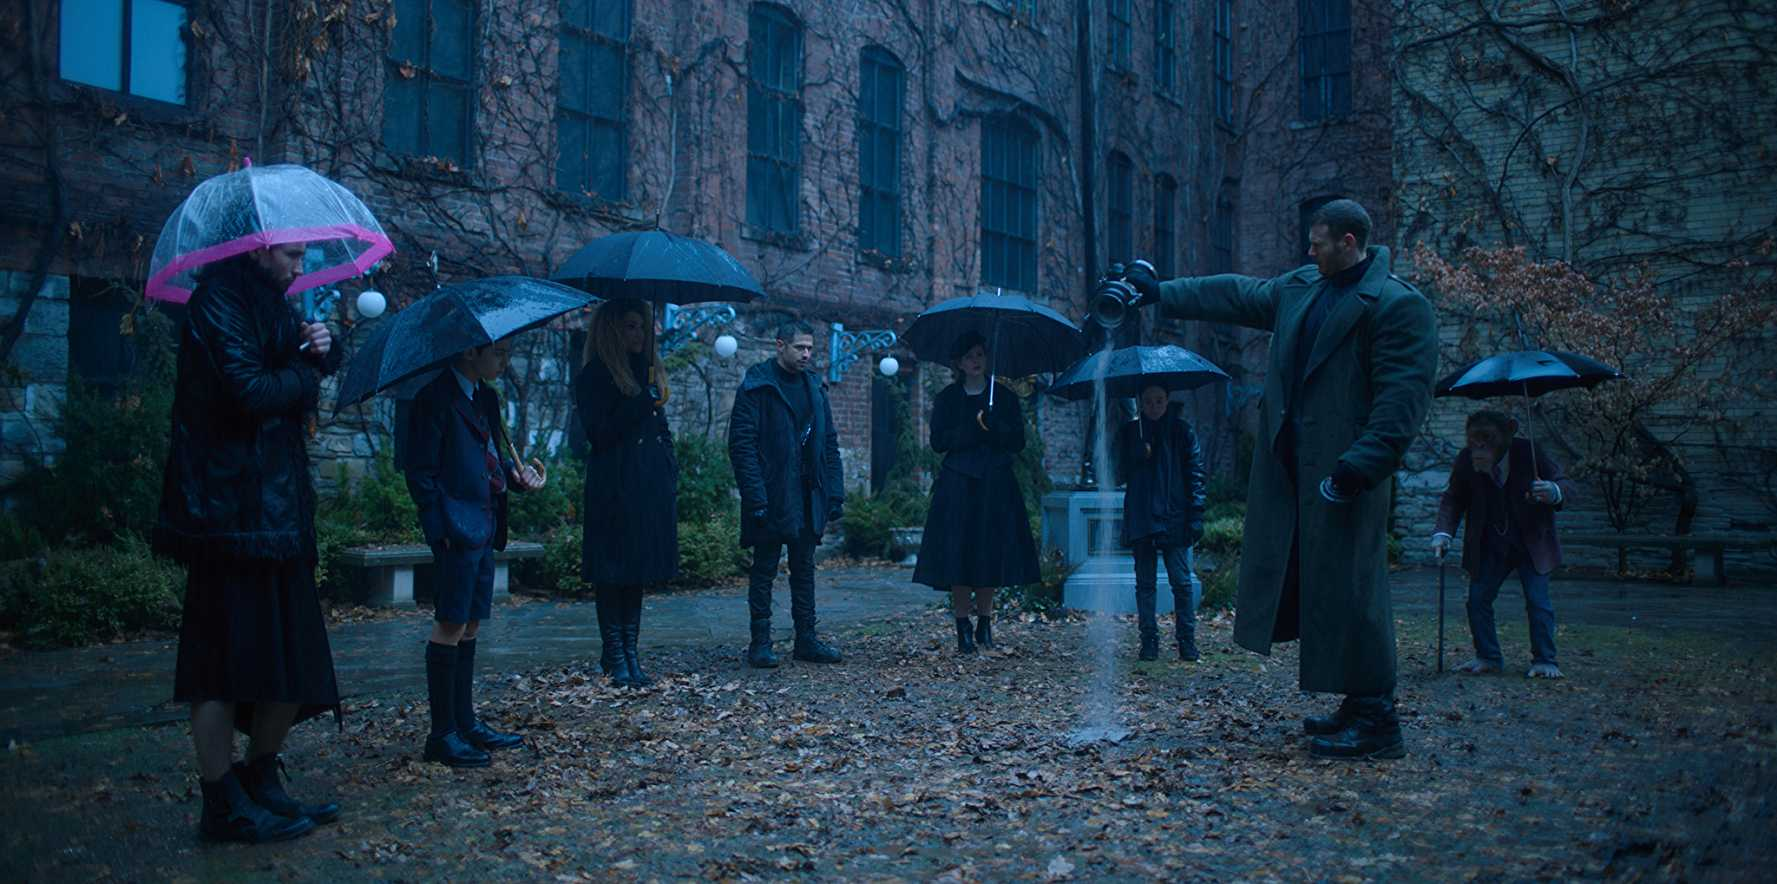 'The Umbrella Academy'. (Source: IMDB)